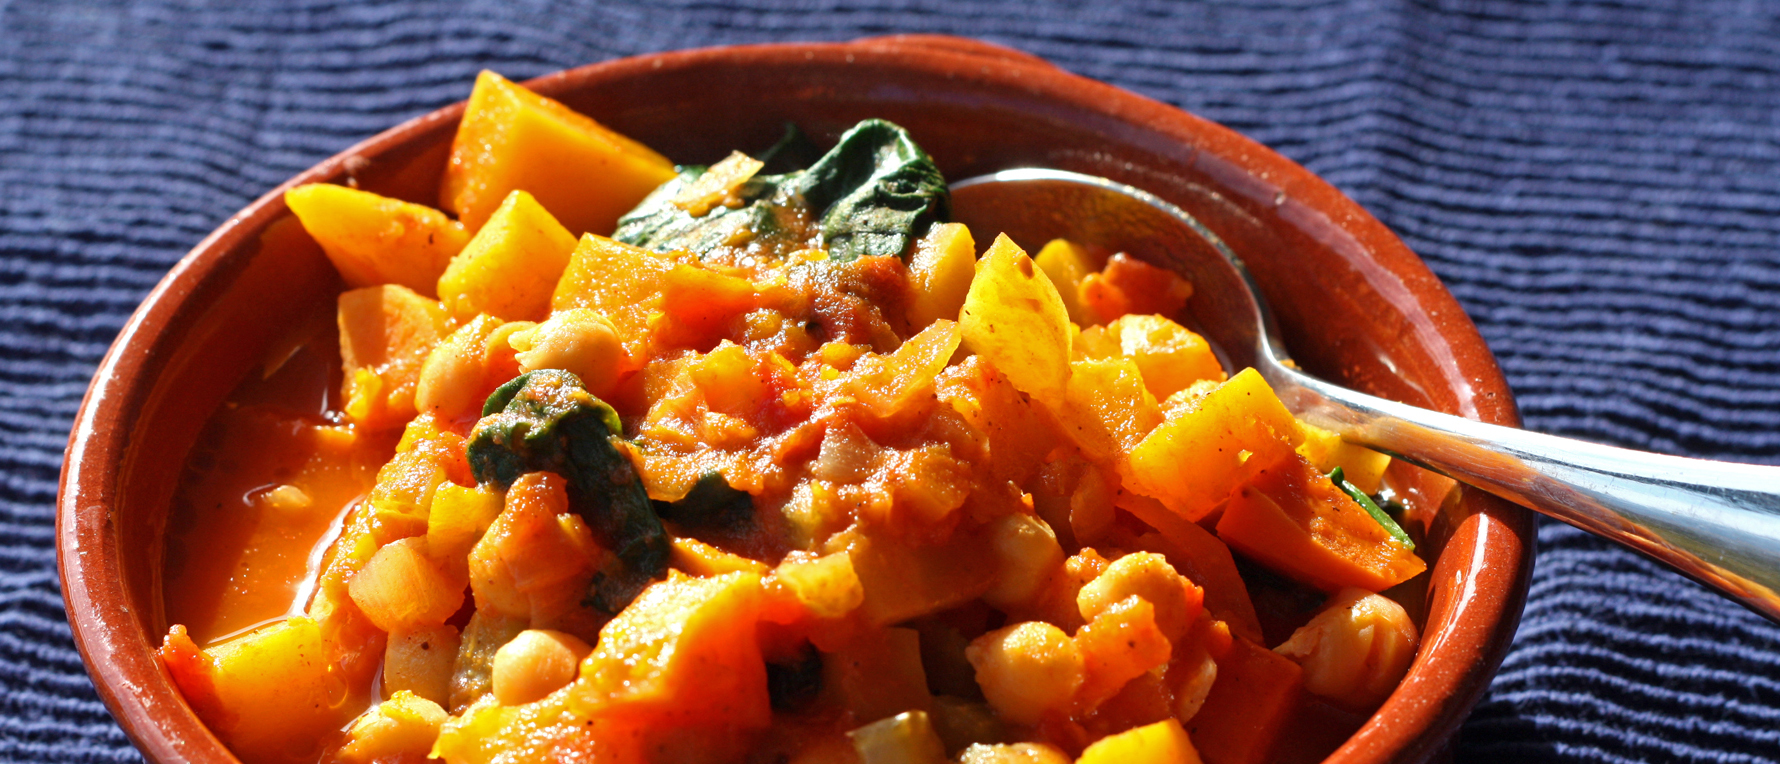 Moroccan Spice Chickpea & Squash Stew | Growing Inspired